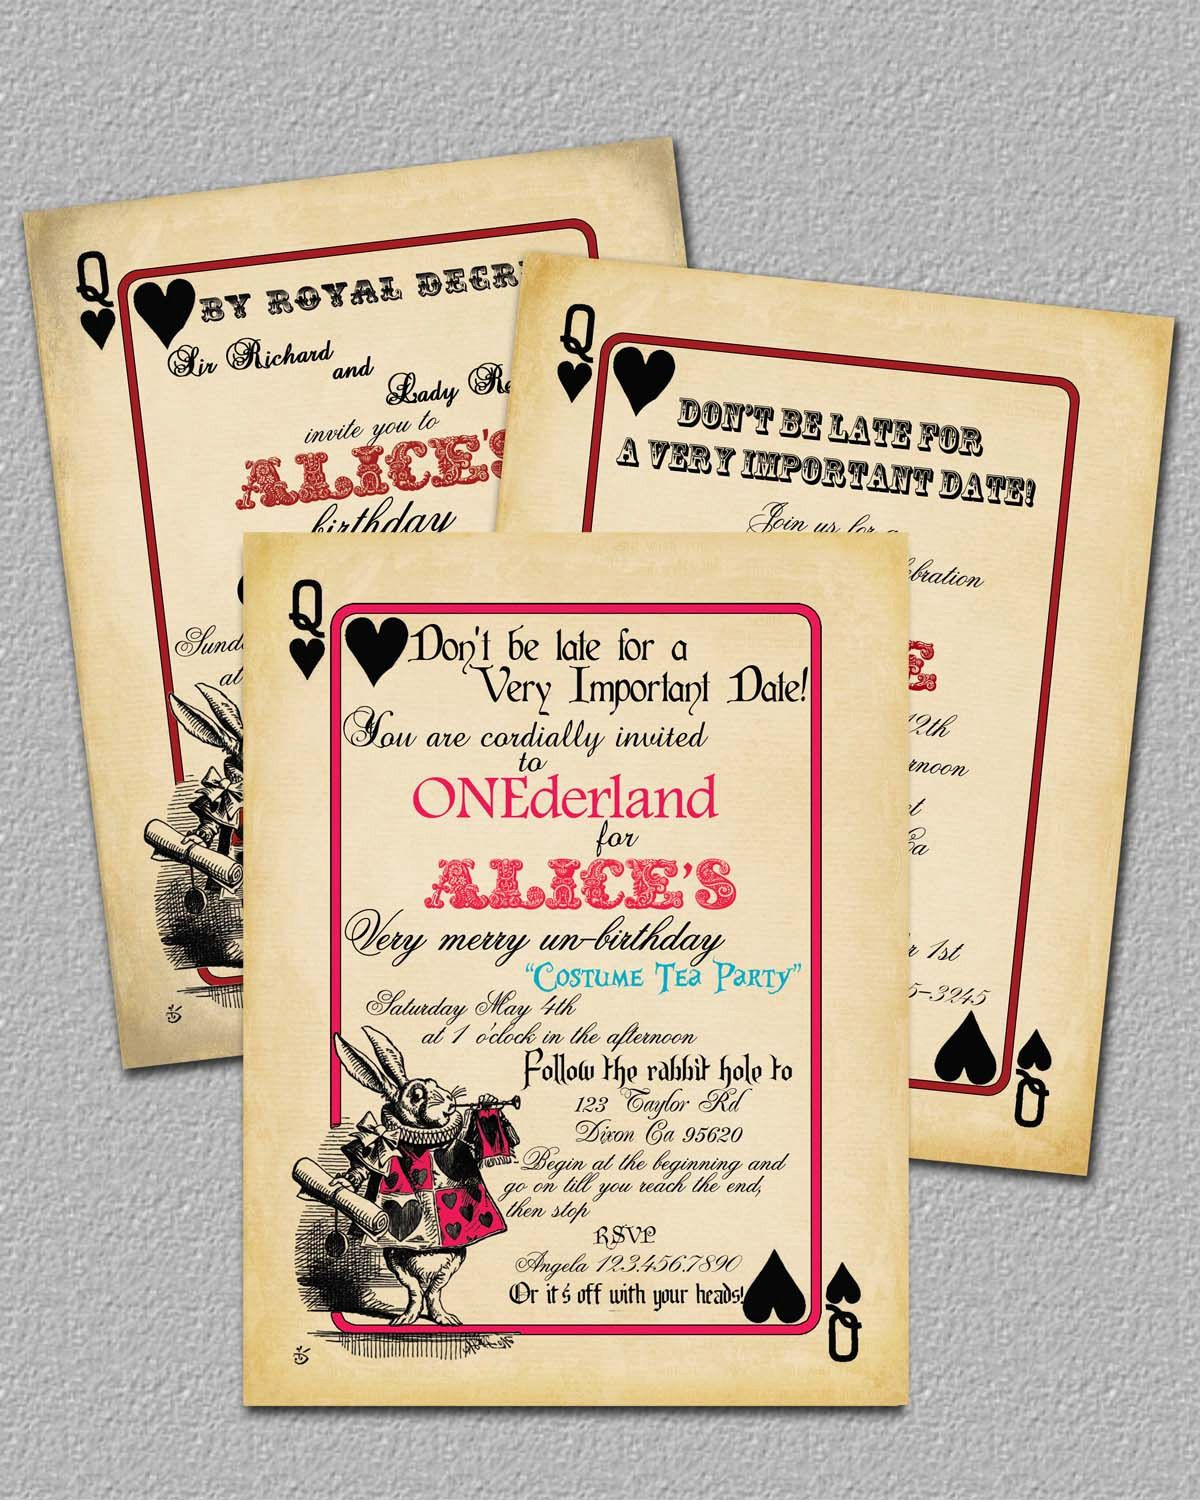 Alice in wonderland invitation template free morenpulsar alice in wonderland invitation template free alice in wonderland party invitations alice maxwellsz